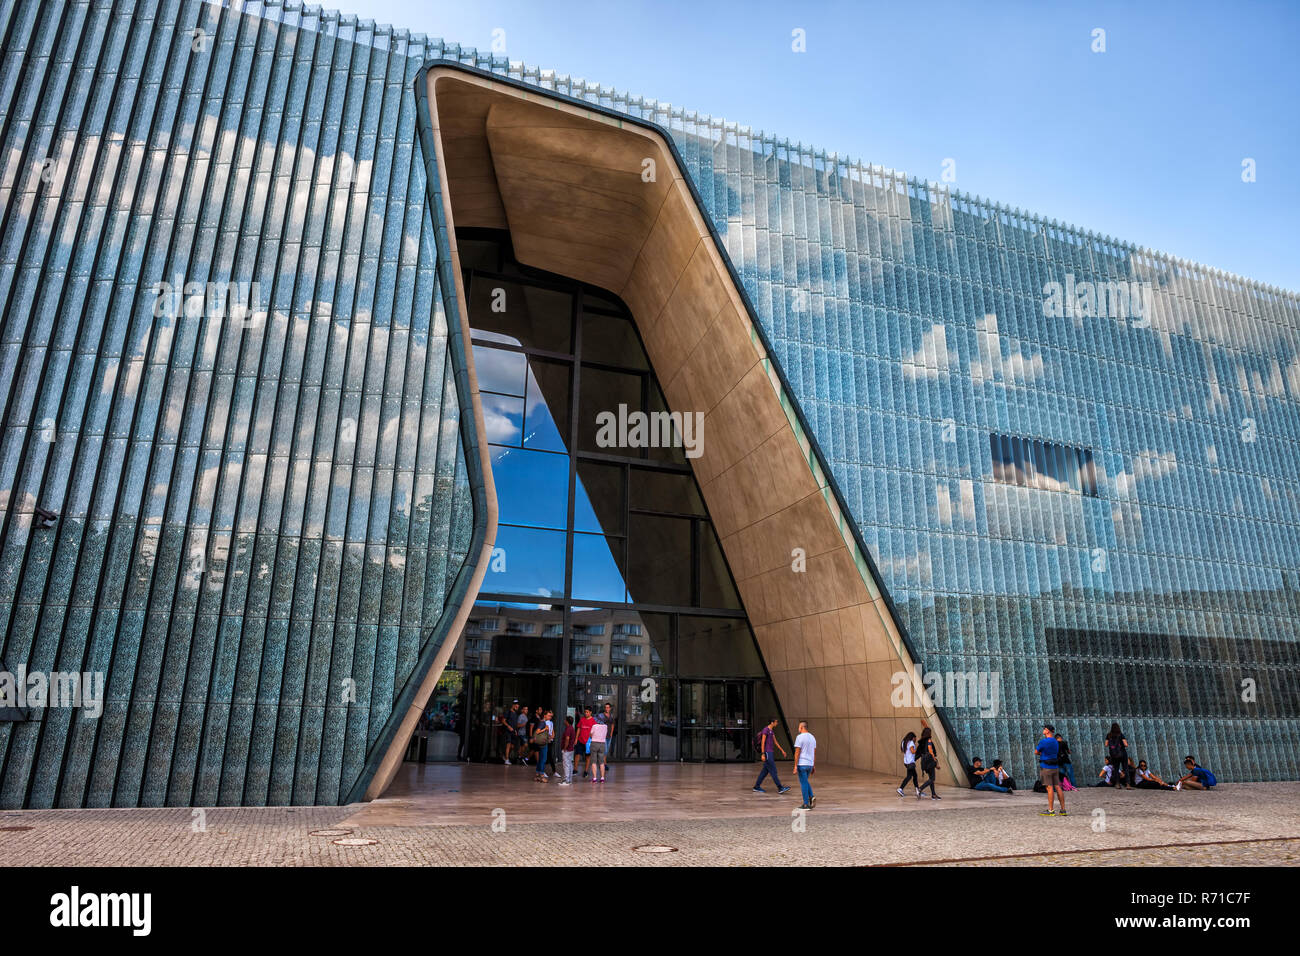 Poland, Warsaw, contemporary glass facade, modern architecture of the POLIN Museum of the History of Polish Jews - Stock Image